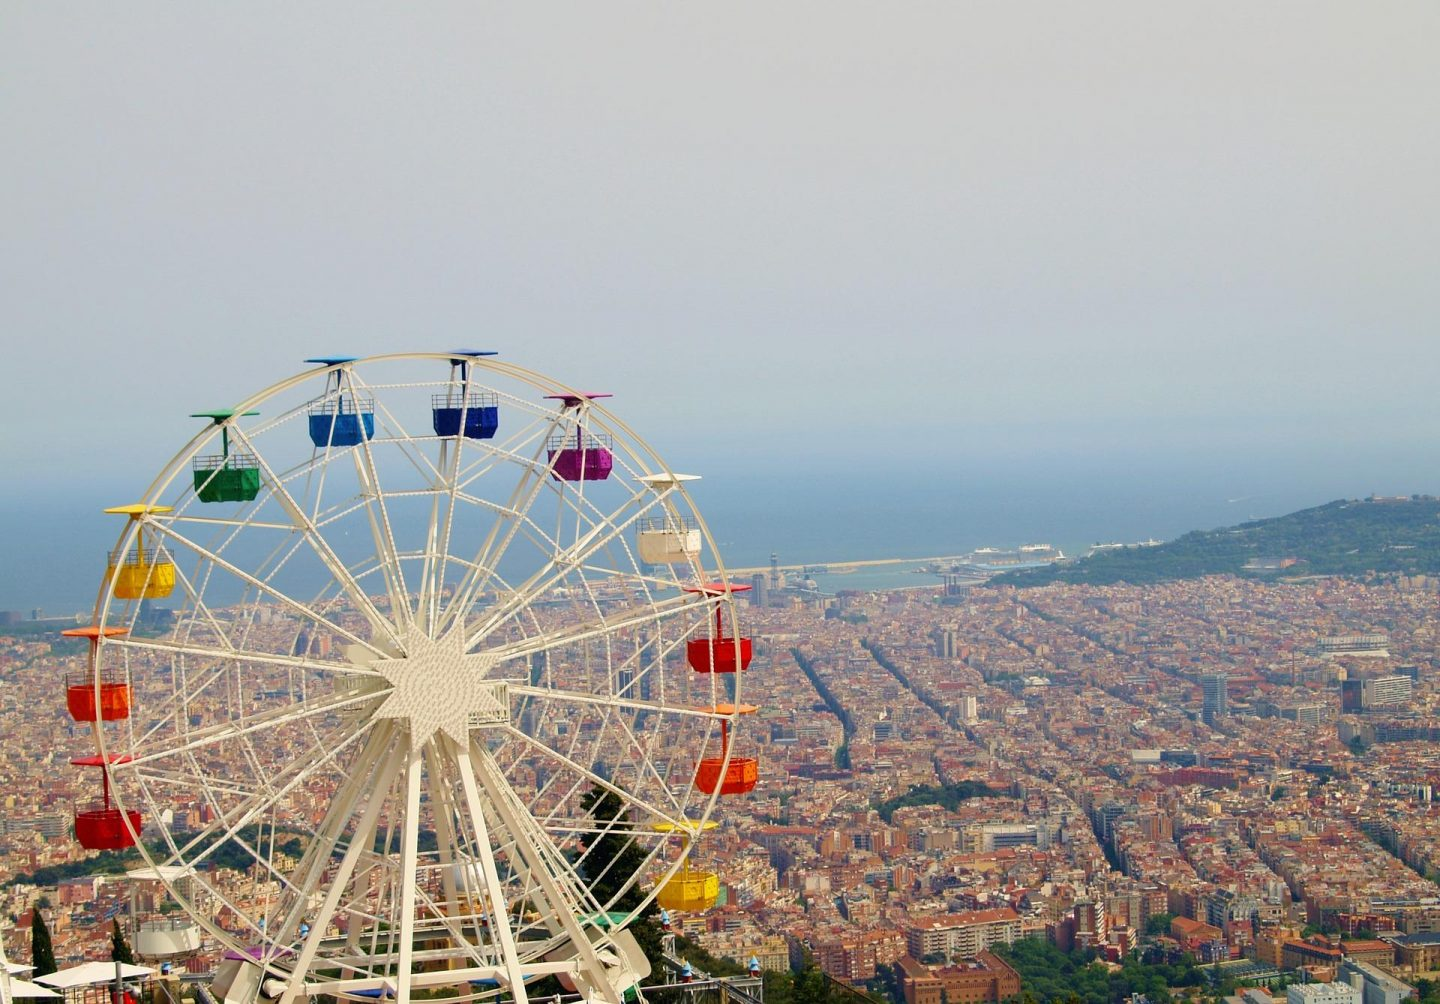 Six Theme Parks to visit in Spain on a Thrill Seeking Holiday, Tibidabo Theme Park - Rachel Nicole UK